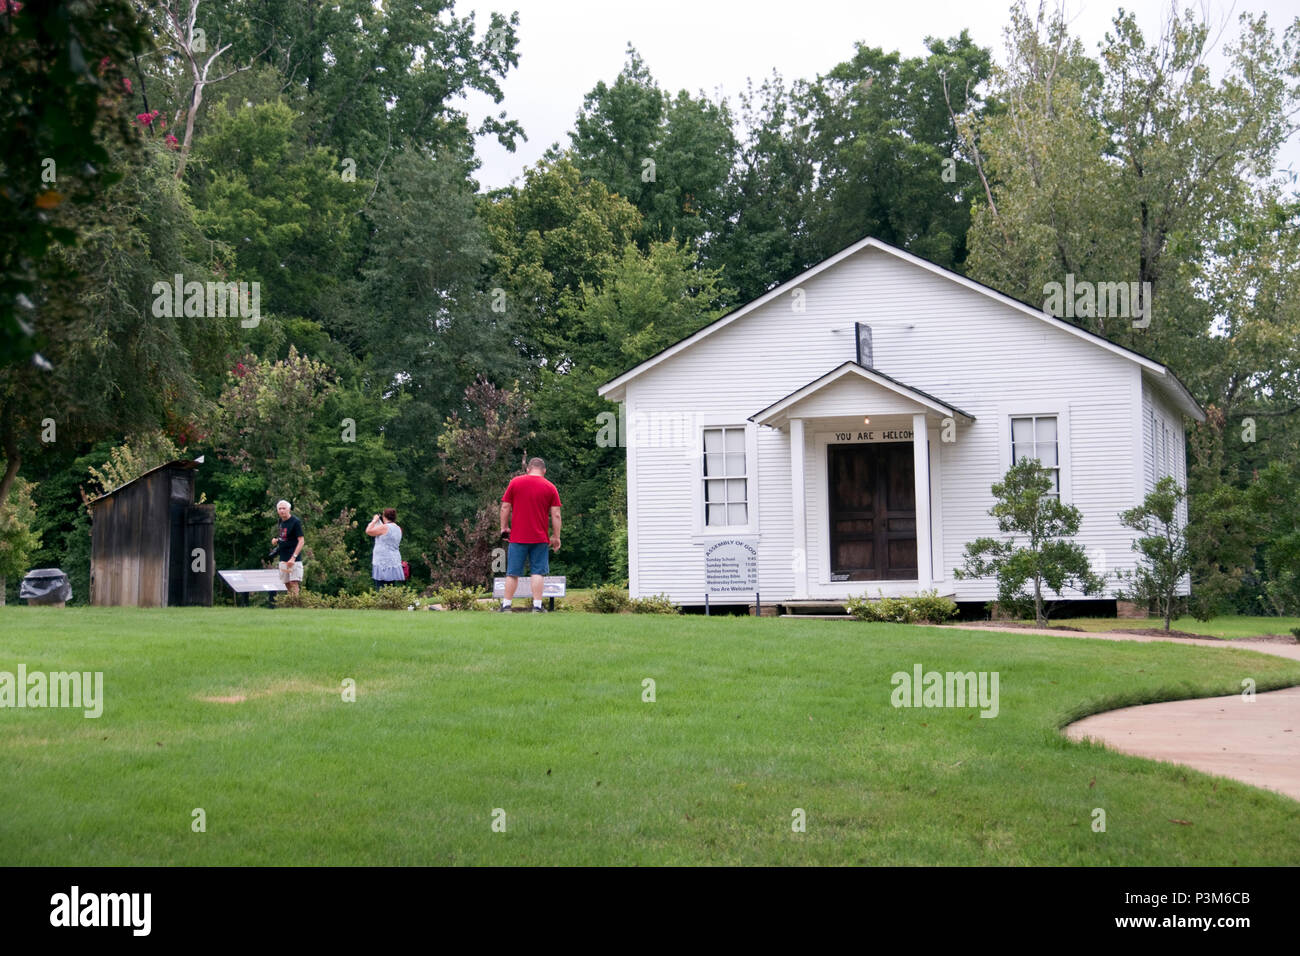 The Assembly of God Church where the Presley family worshiped, at the Elvis Presley Birthplace historic site, Tupelo, Mississippi. - Stock Image